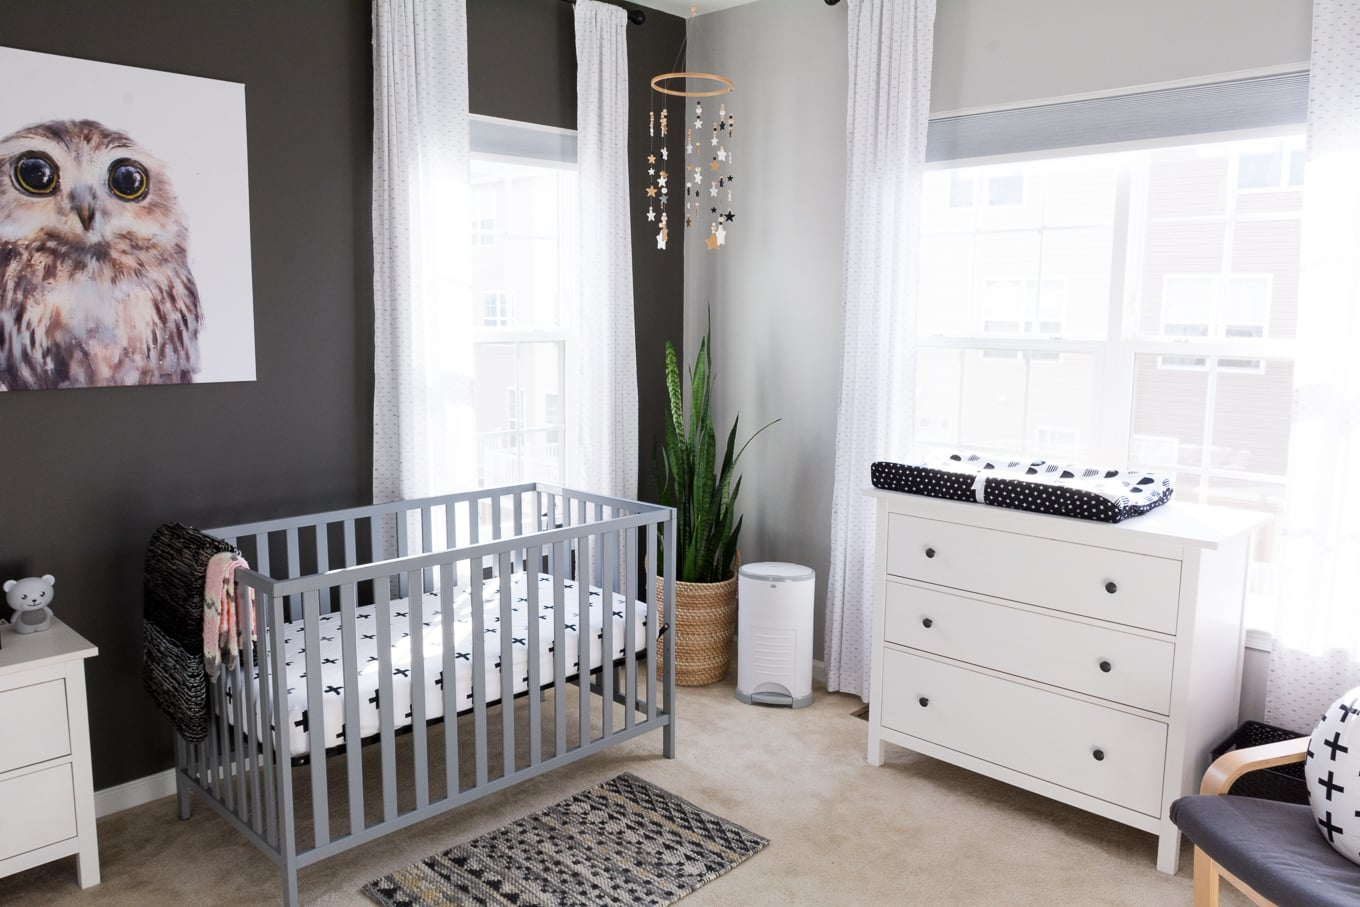 A Modern and Neutral Nursery // Behr Silver City, Behr Dark Granite // Ikea Hemnes in nursery